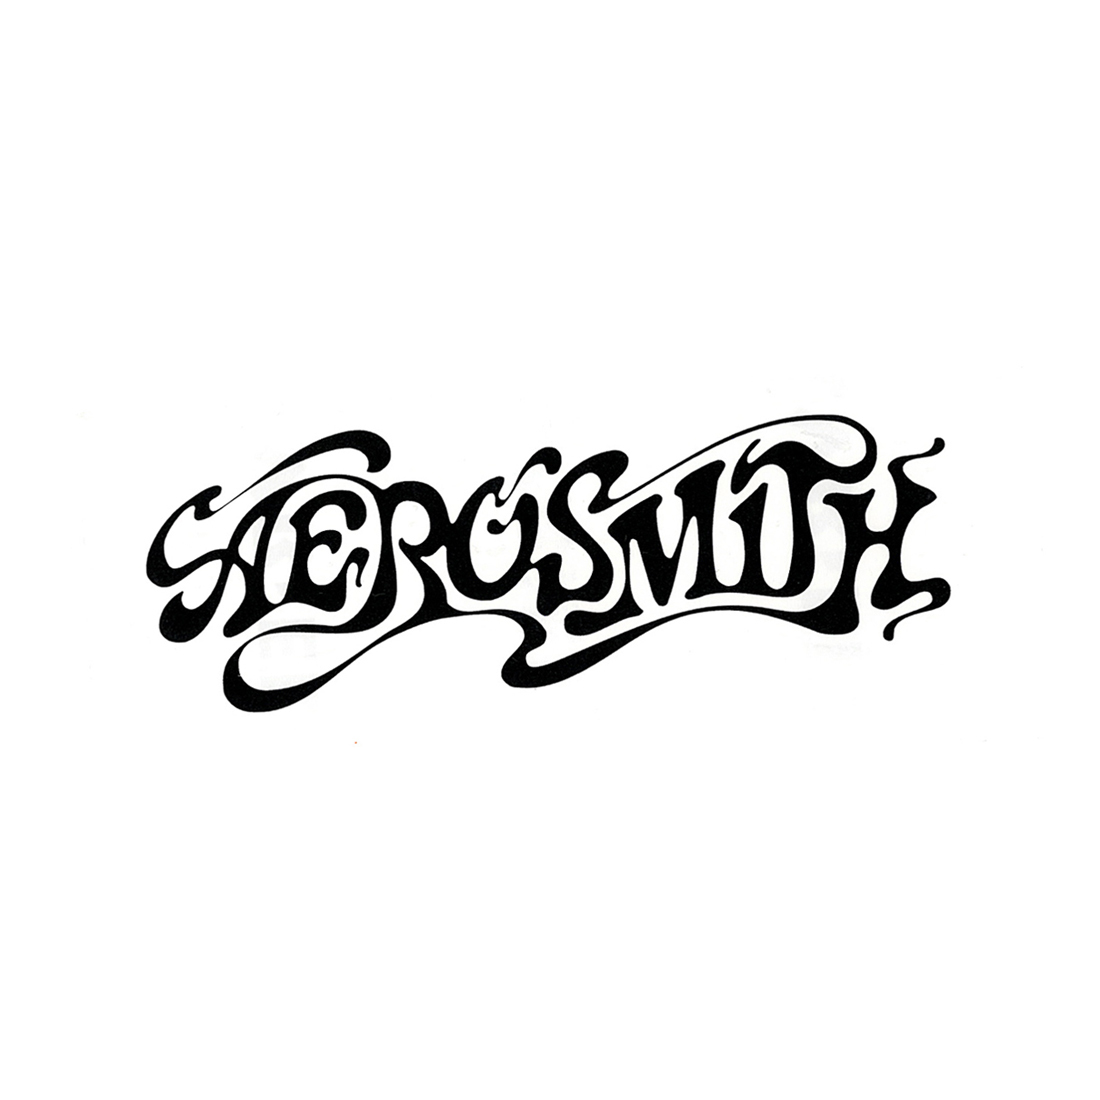 Aerosmith Record Vector Png Transparent Aerosmith Record Vector